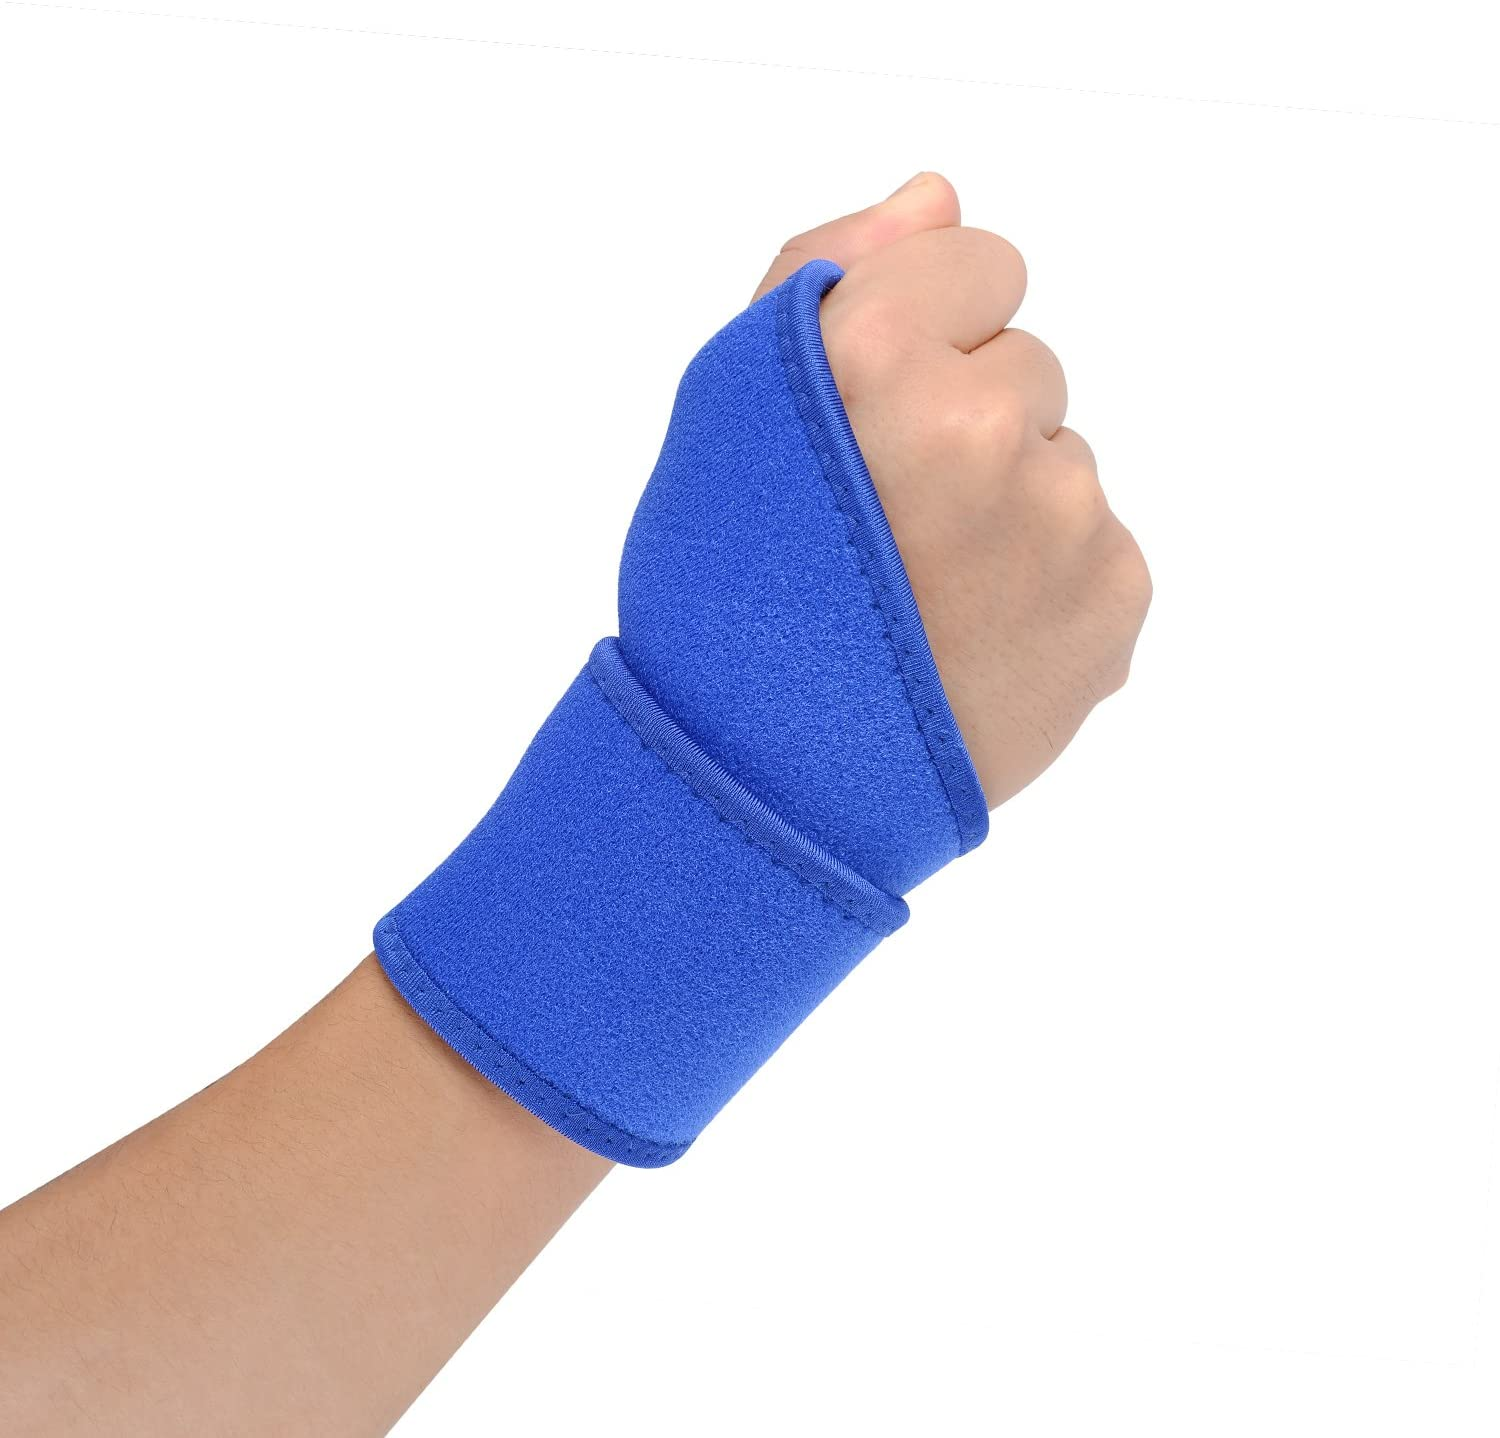 Glevel Wrist Wraps - Professional Grade with Thumb Loops - Wrist Support Braces for Men & Women - Weight Lifting, owerlifting, Strength Training